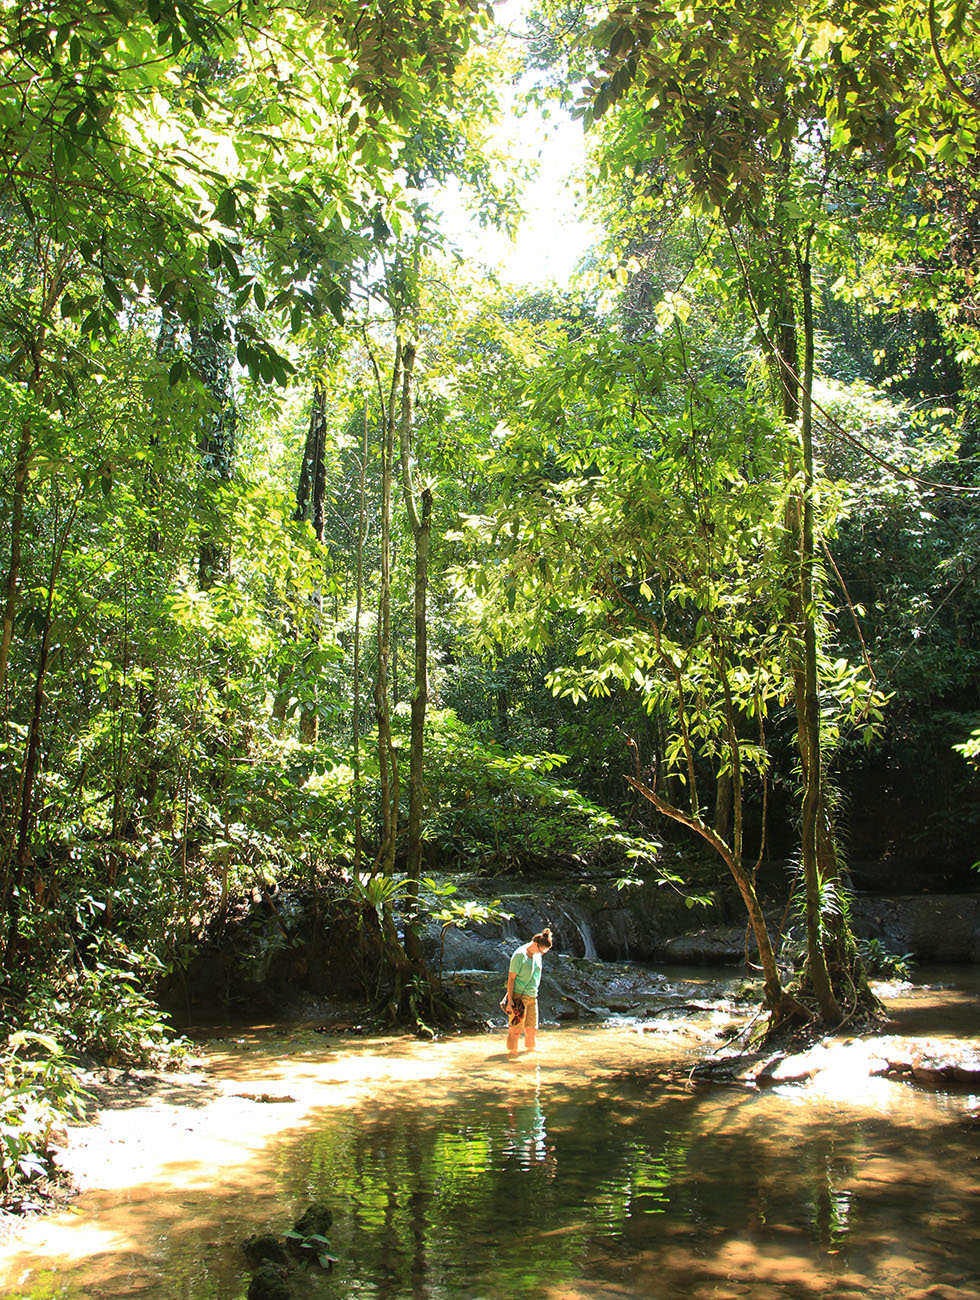 Sa Nang Manora Forest Park in Phang Nga